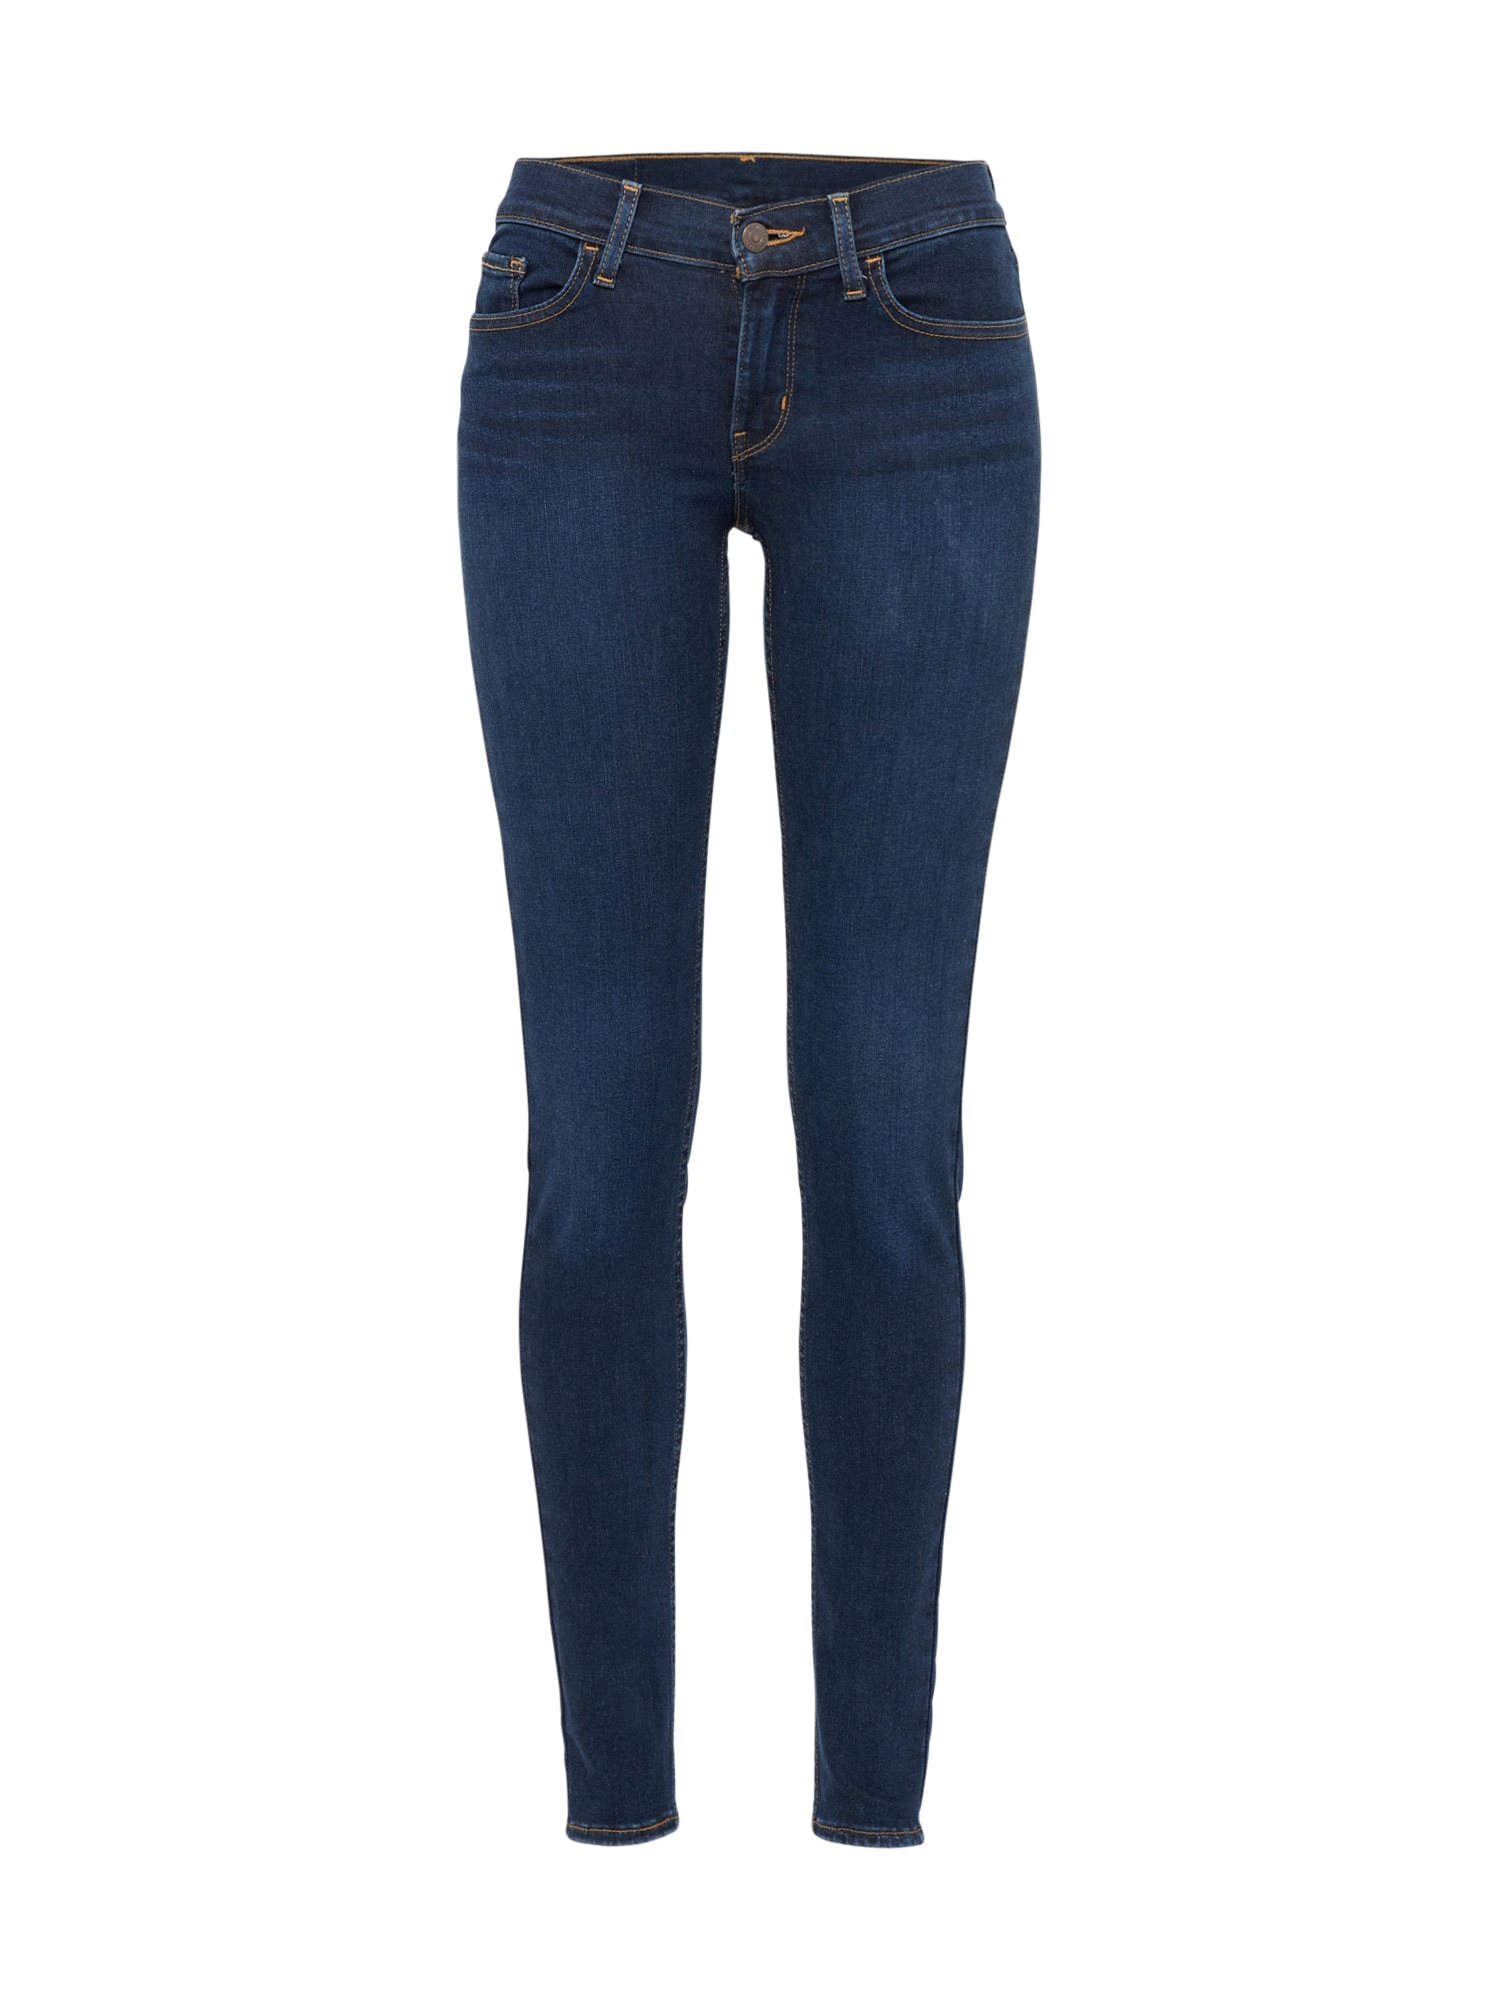 LEVI'S Dames Jeans 710 Innovation Super Skinny navy